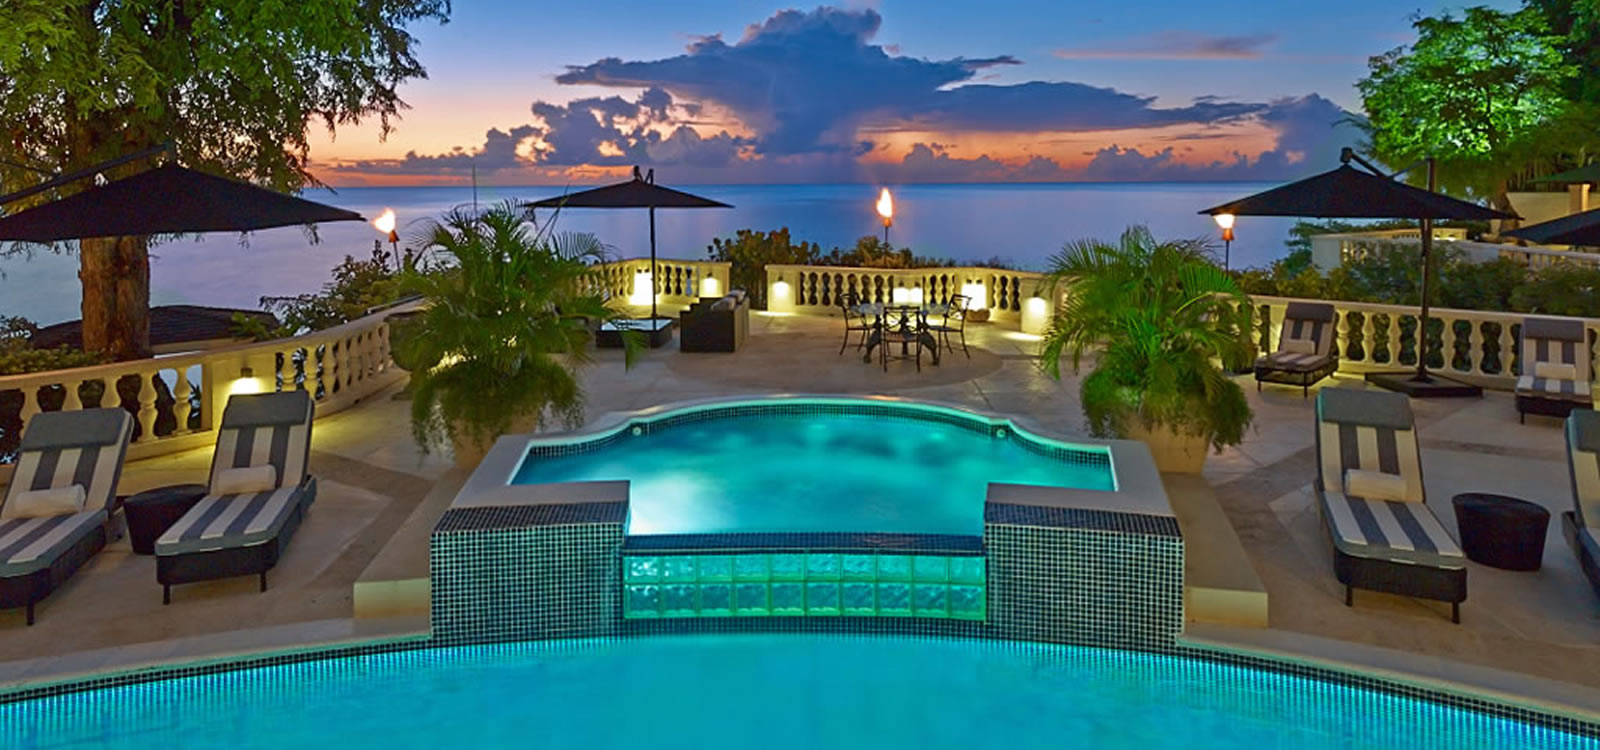 Barbados st james luxury beachfront estate for sale 2 for Luxury beachfront property for sale